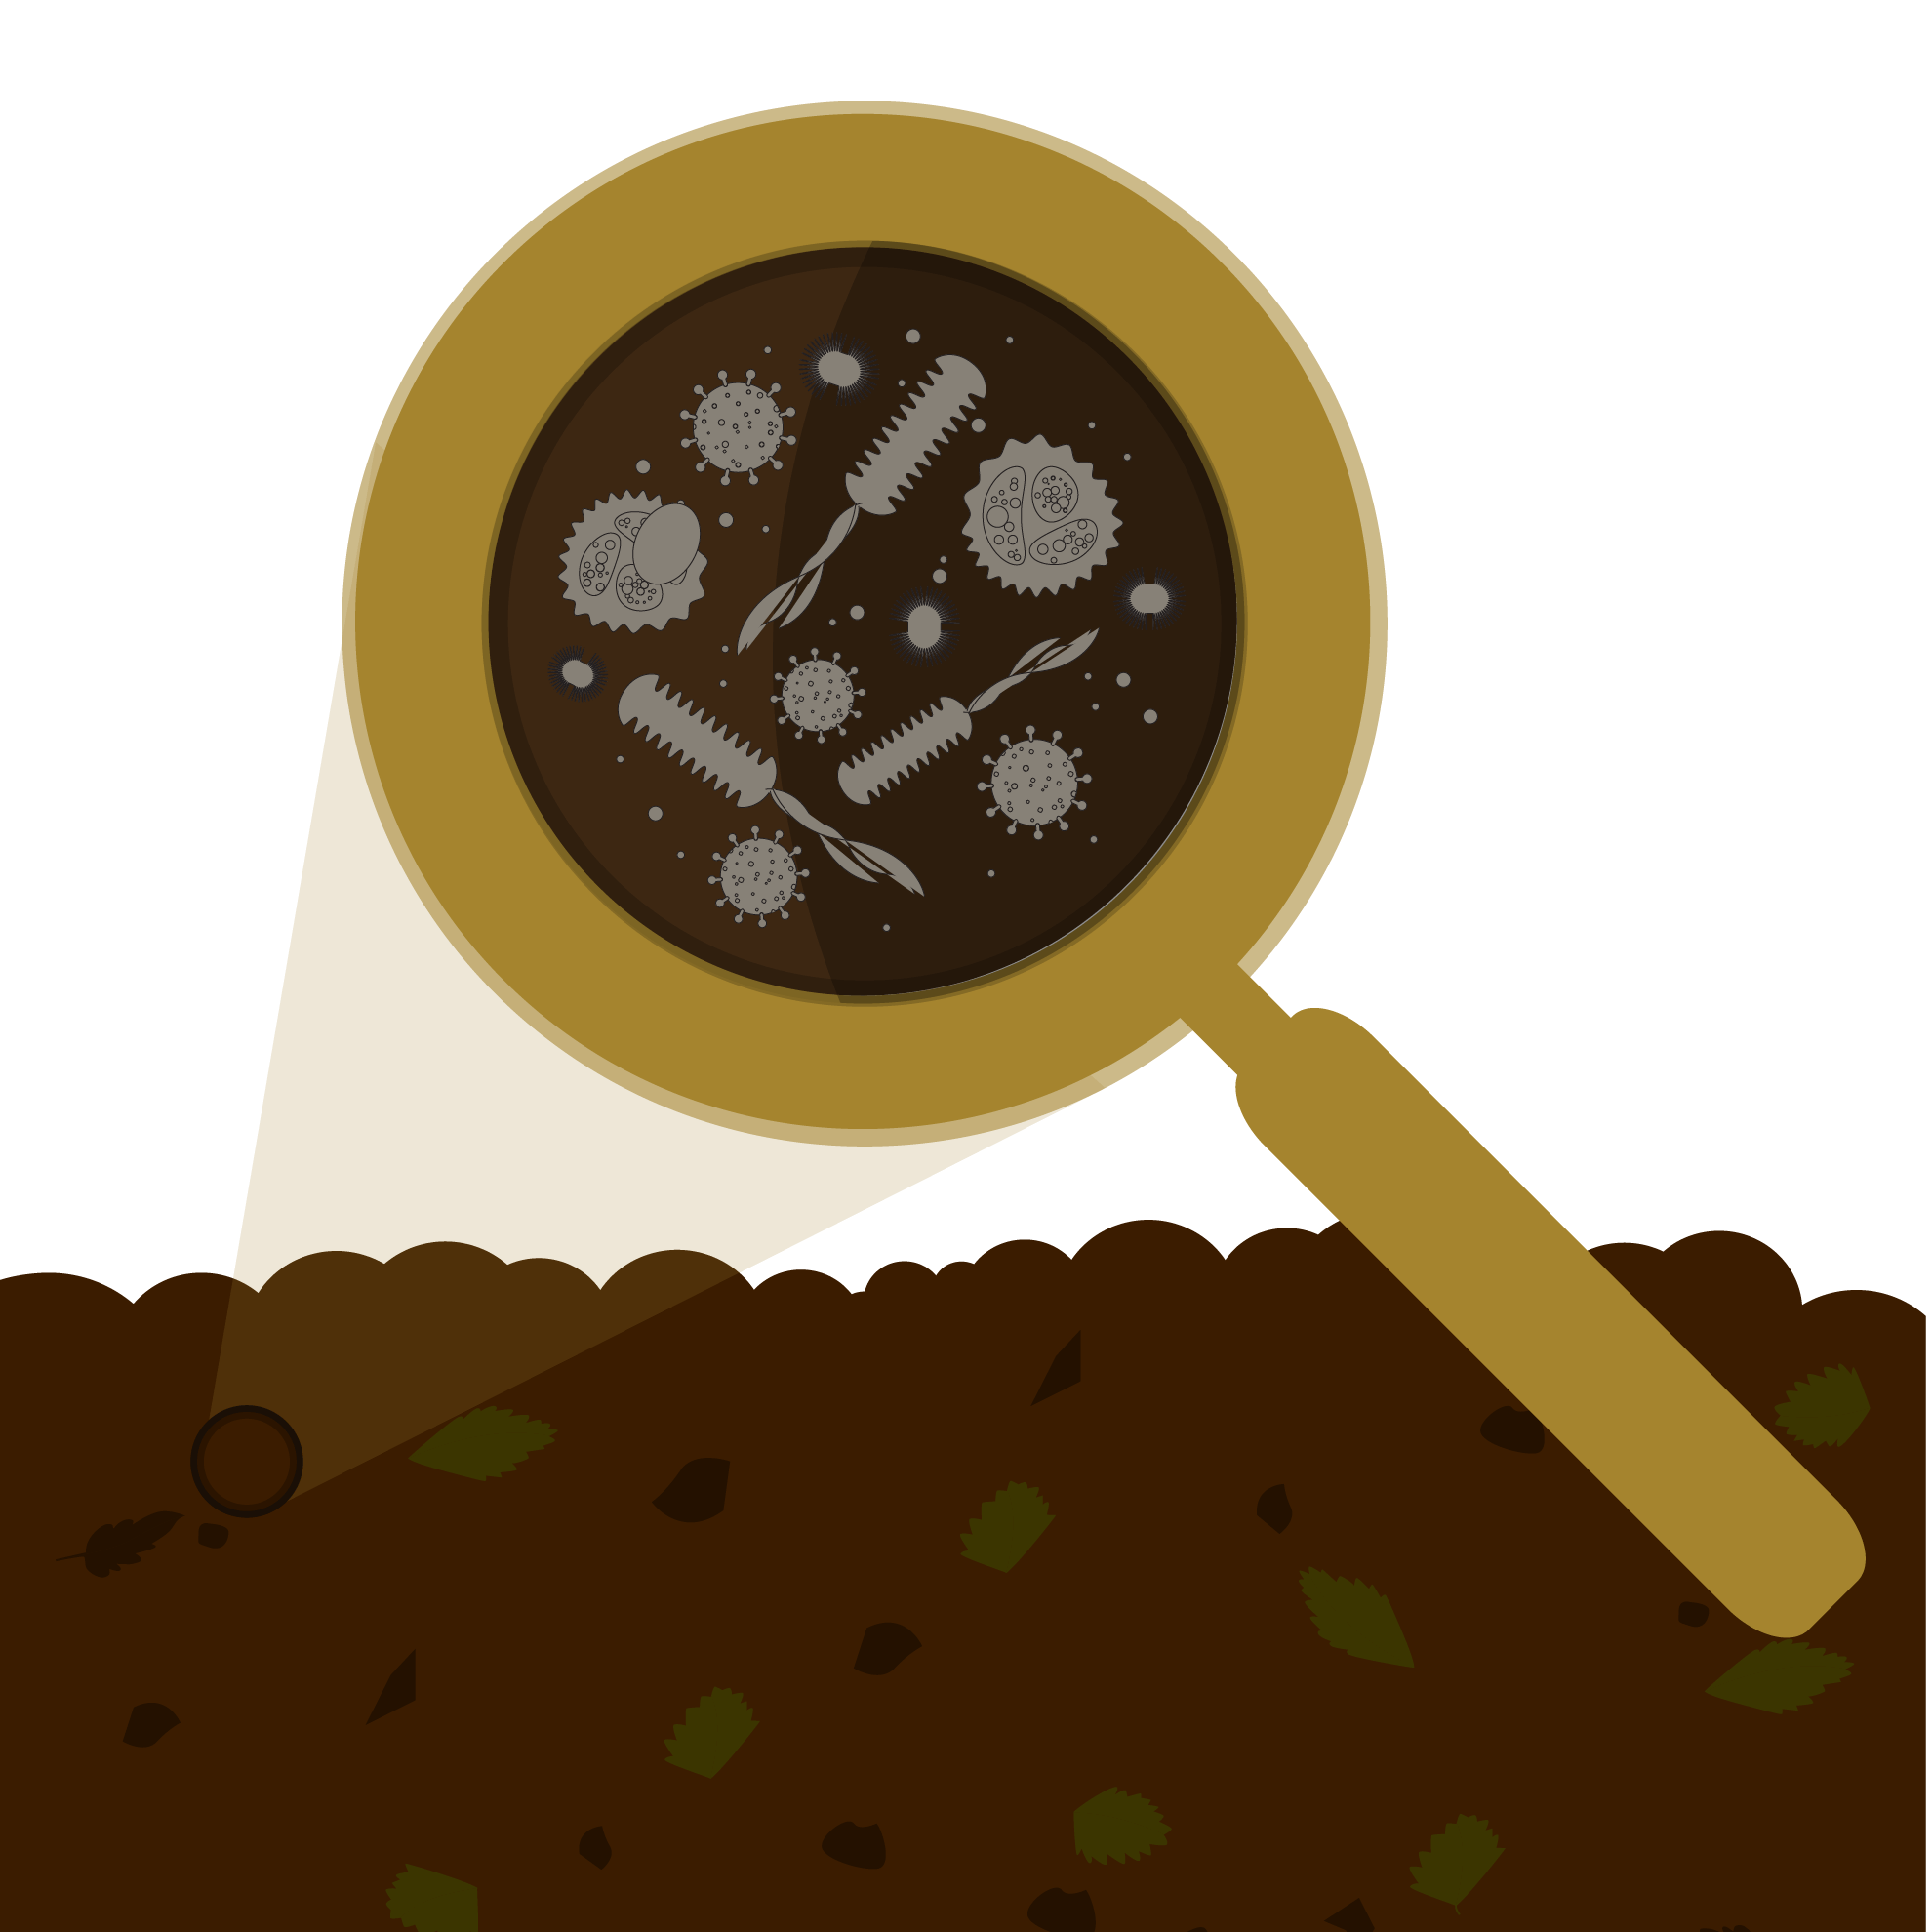 magnifying glass examining bacteria in dirt